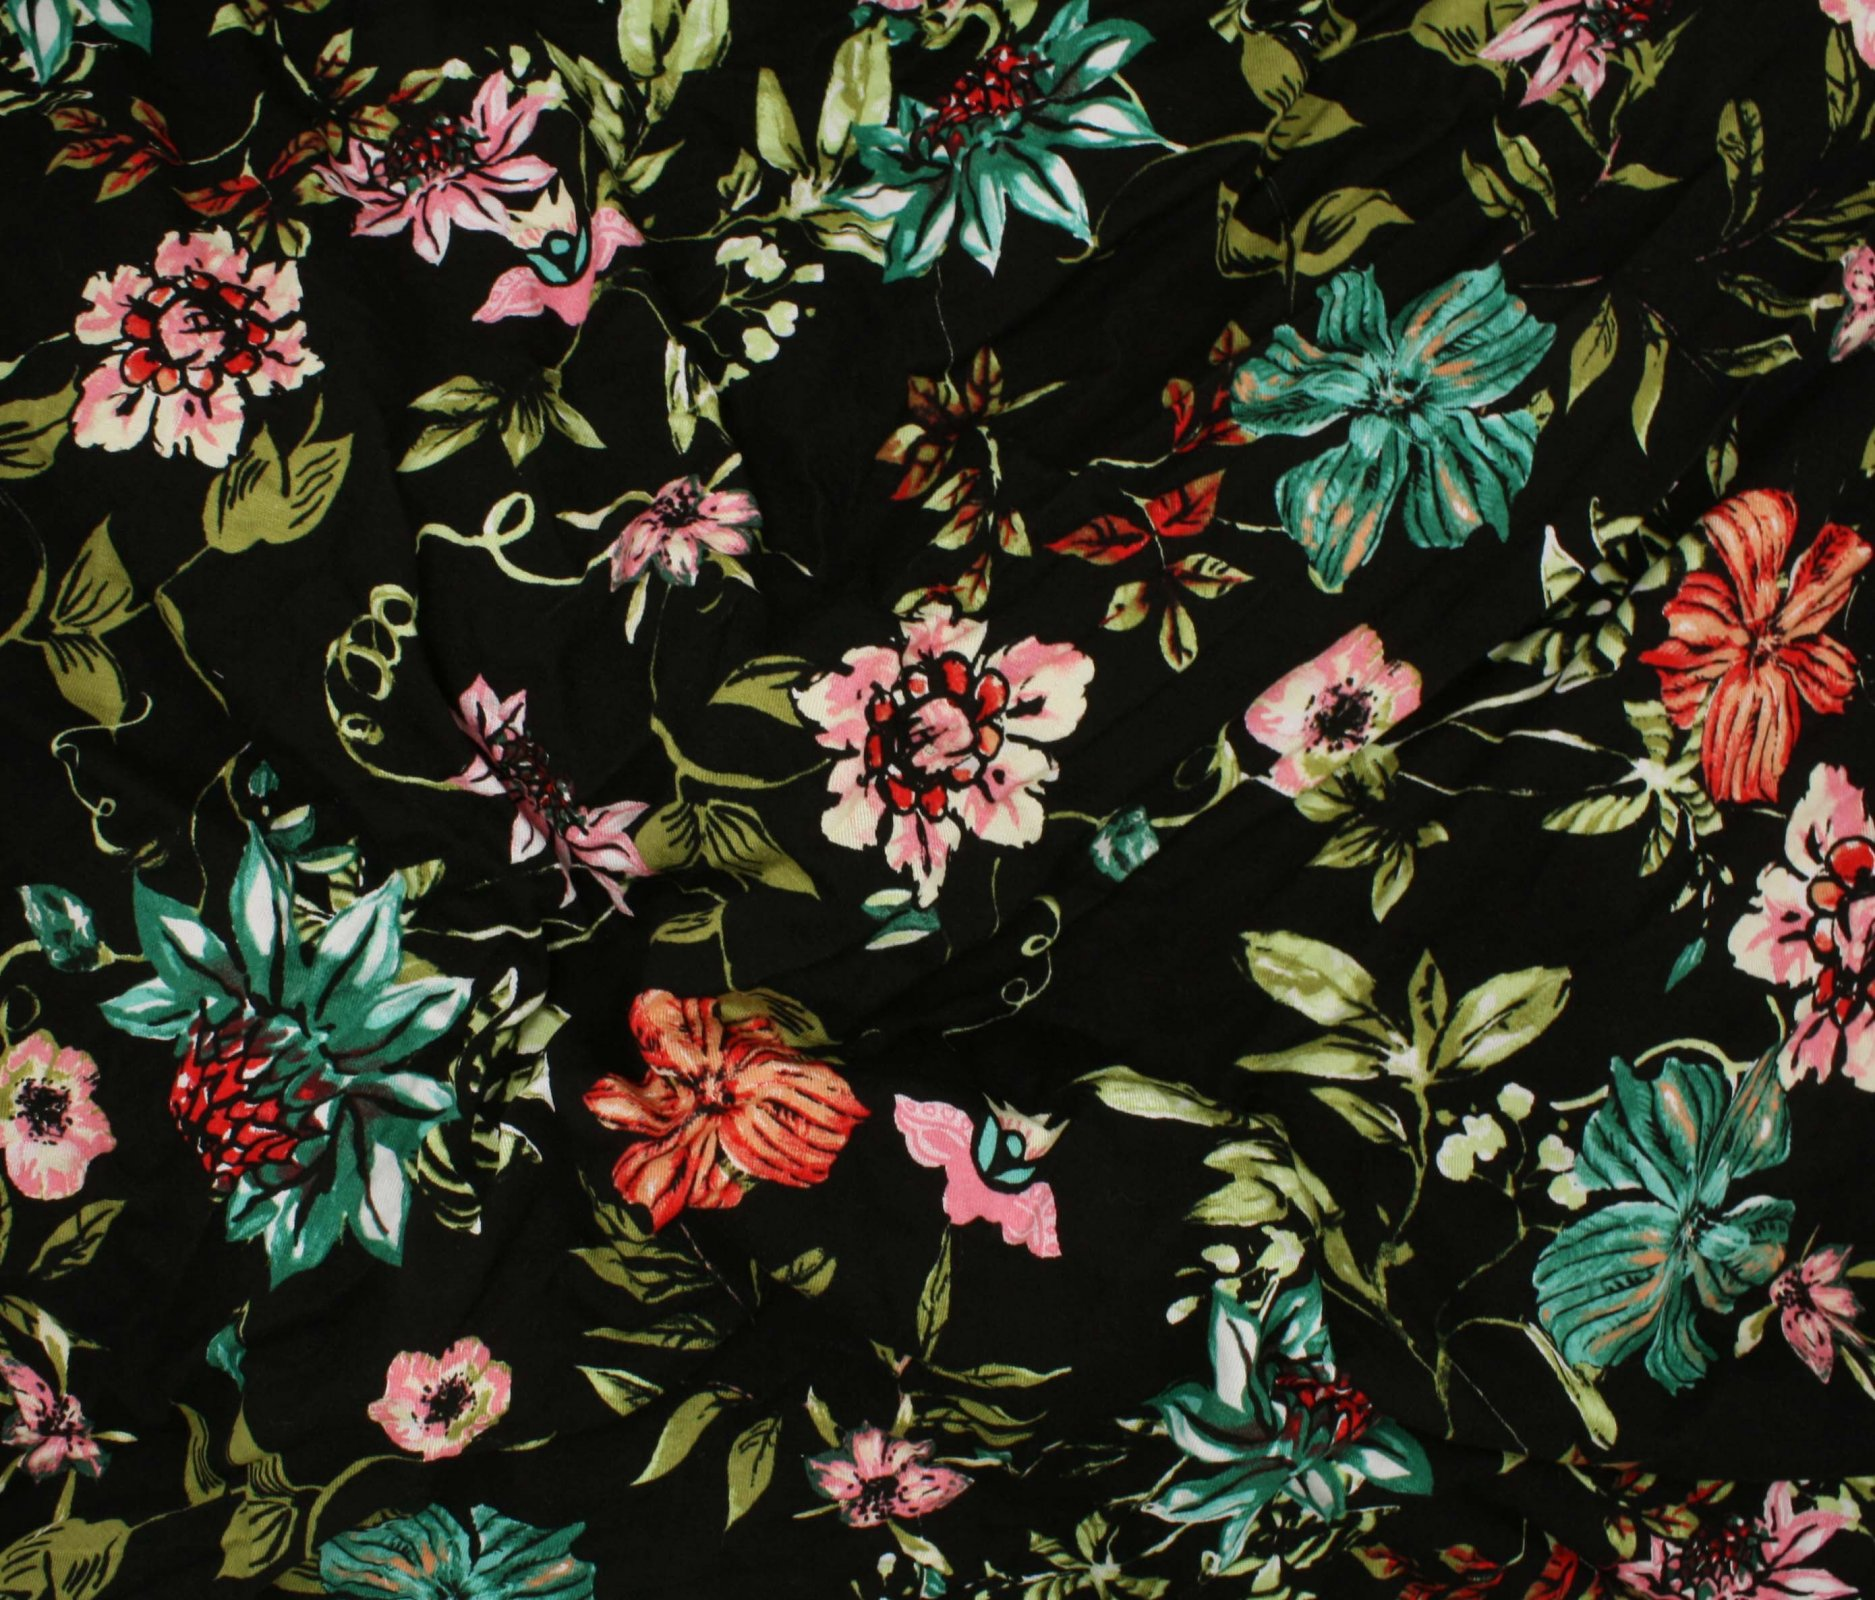 Dakota Knit Print - Wildflower Blooms - Black